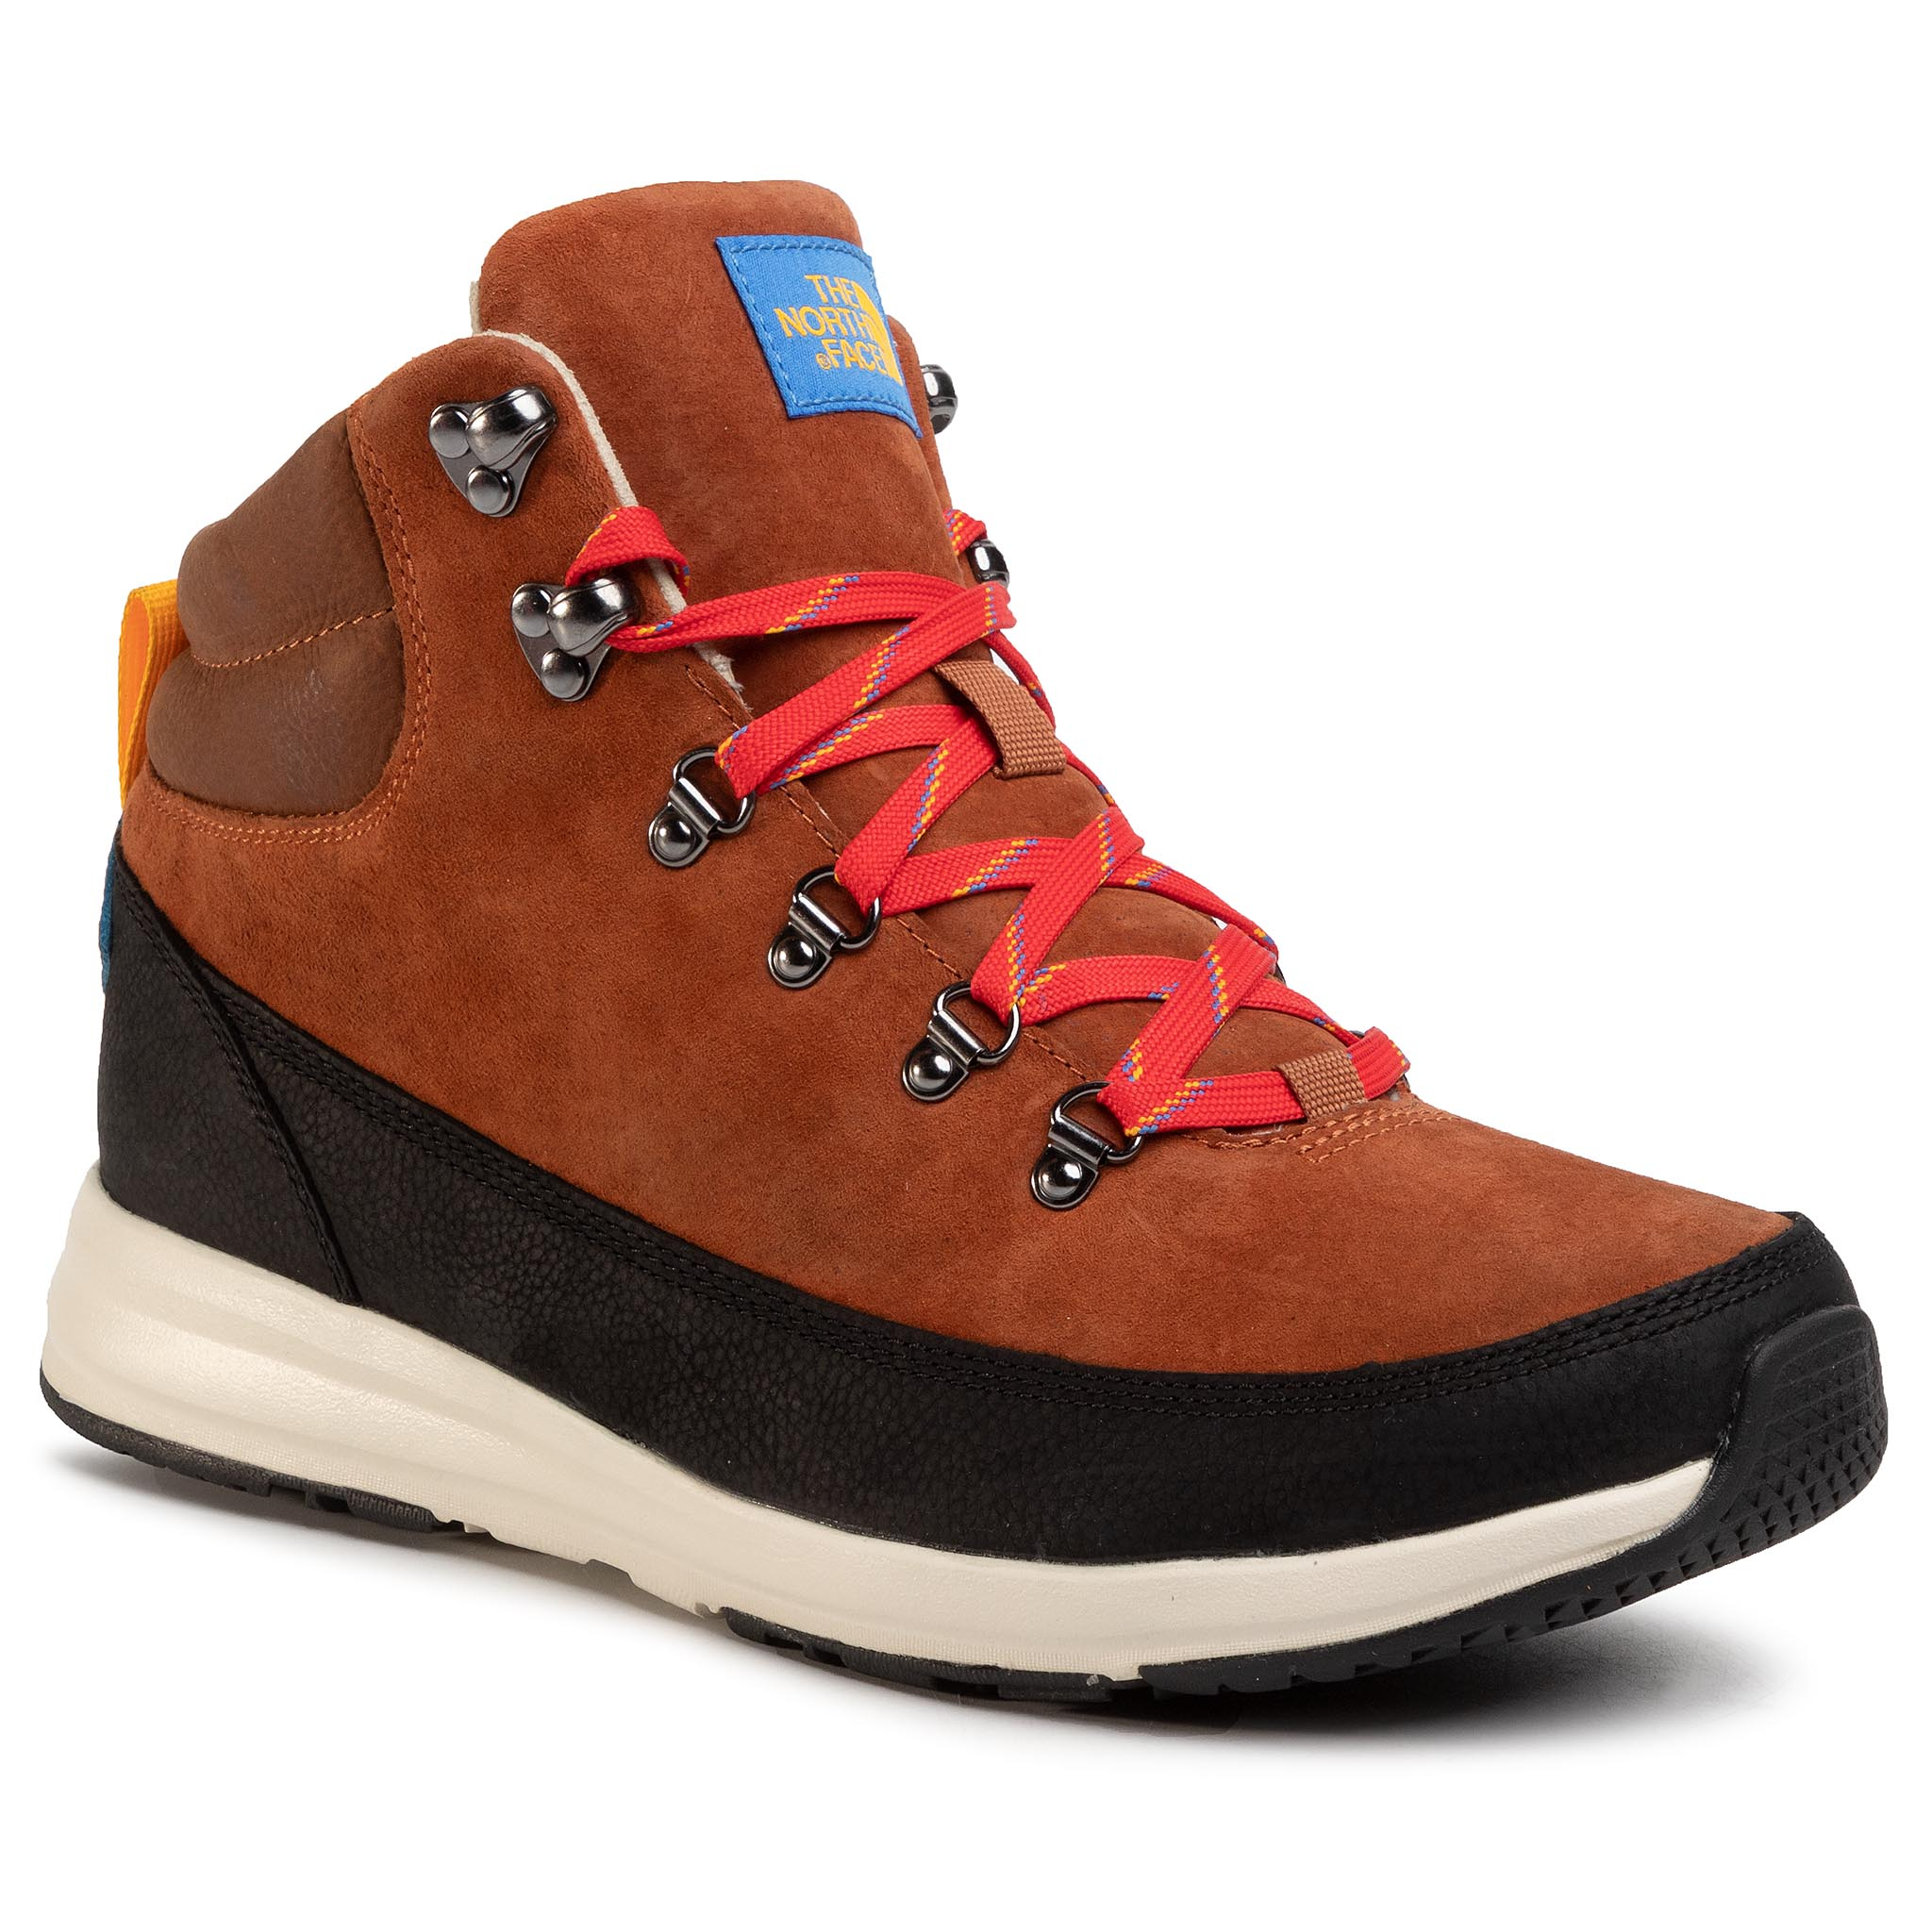 Trekkings The North Face - Back-To Berkeley Redux Remtlz Lux Nf0a3wzzg6m1 Caramel Cafe/Tnf Black imagine